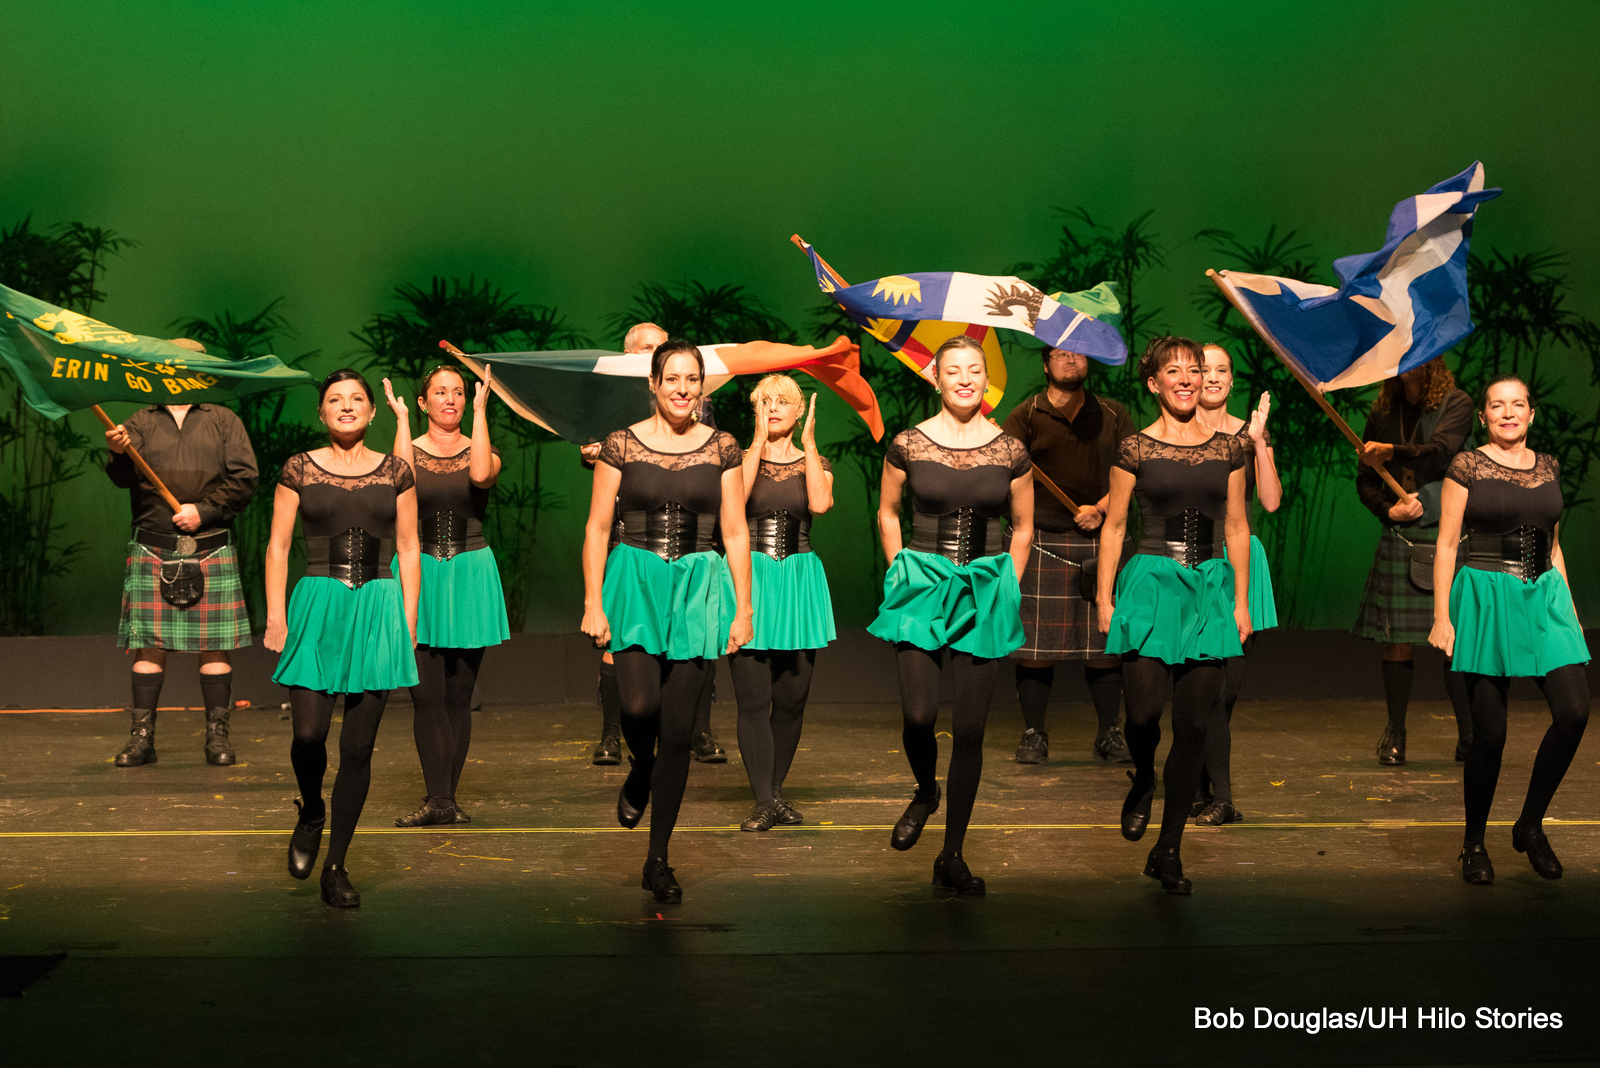 Line of female dancers in green skirts, black top and tights, shoes. They are doing Irish tap dance.